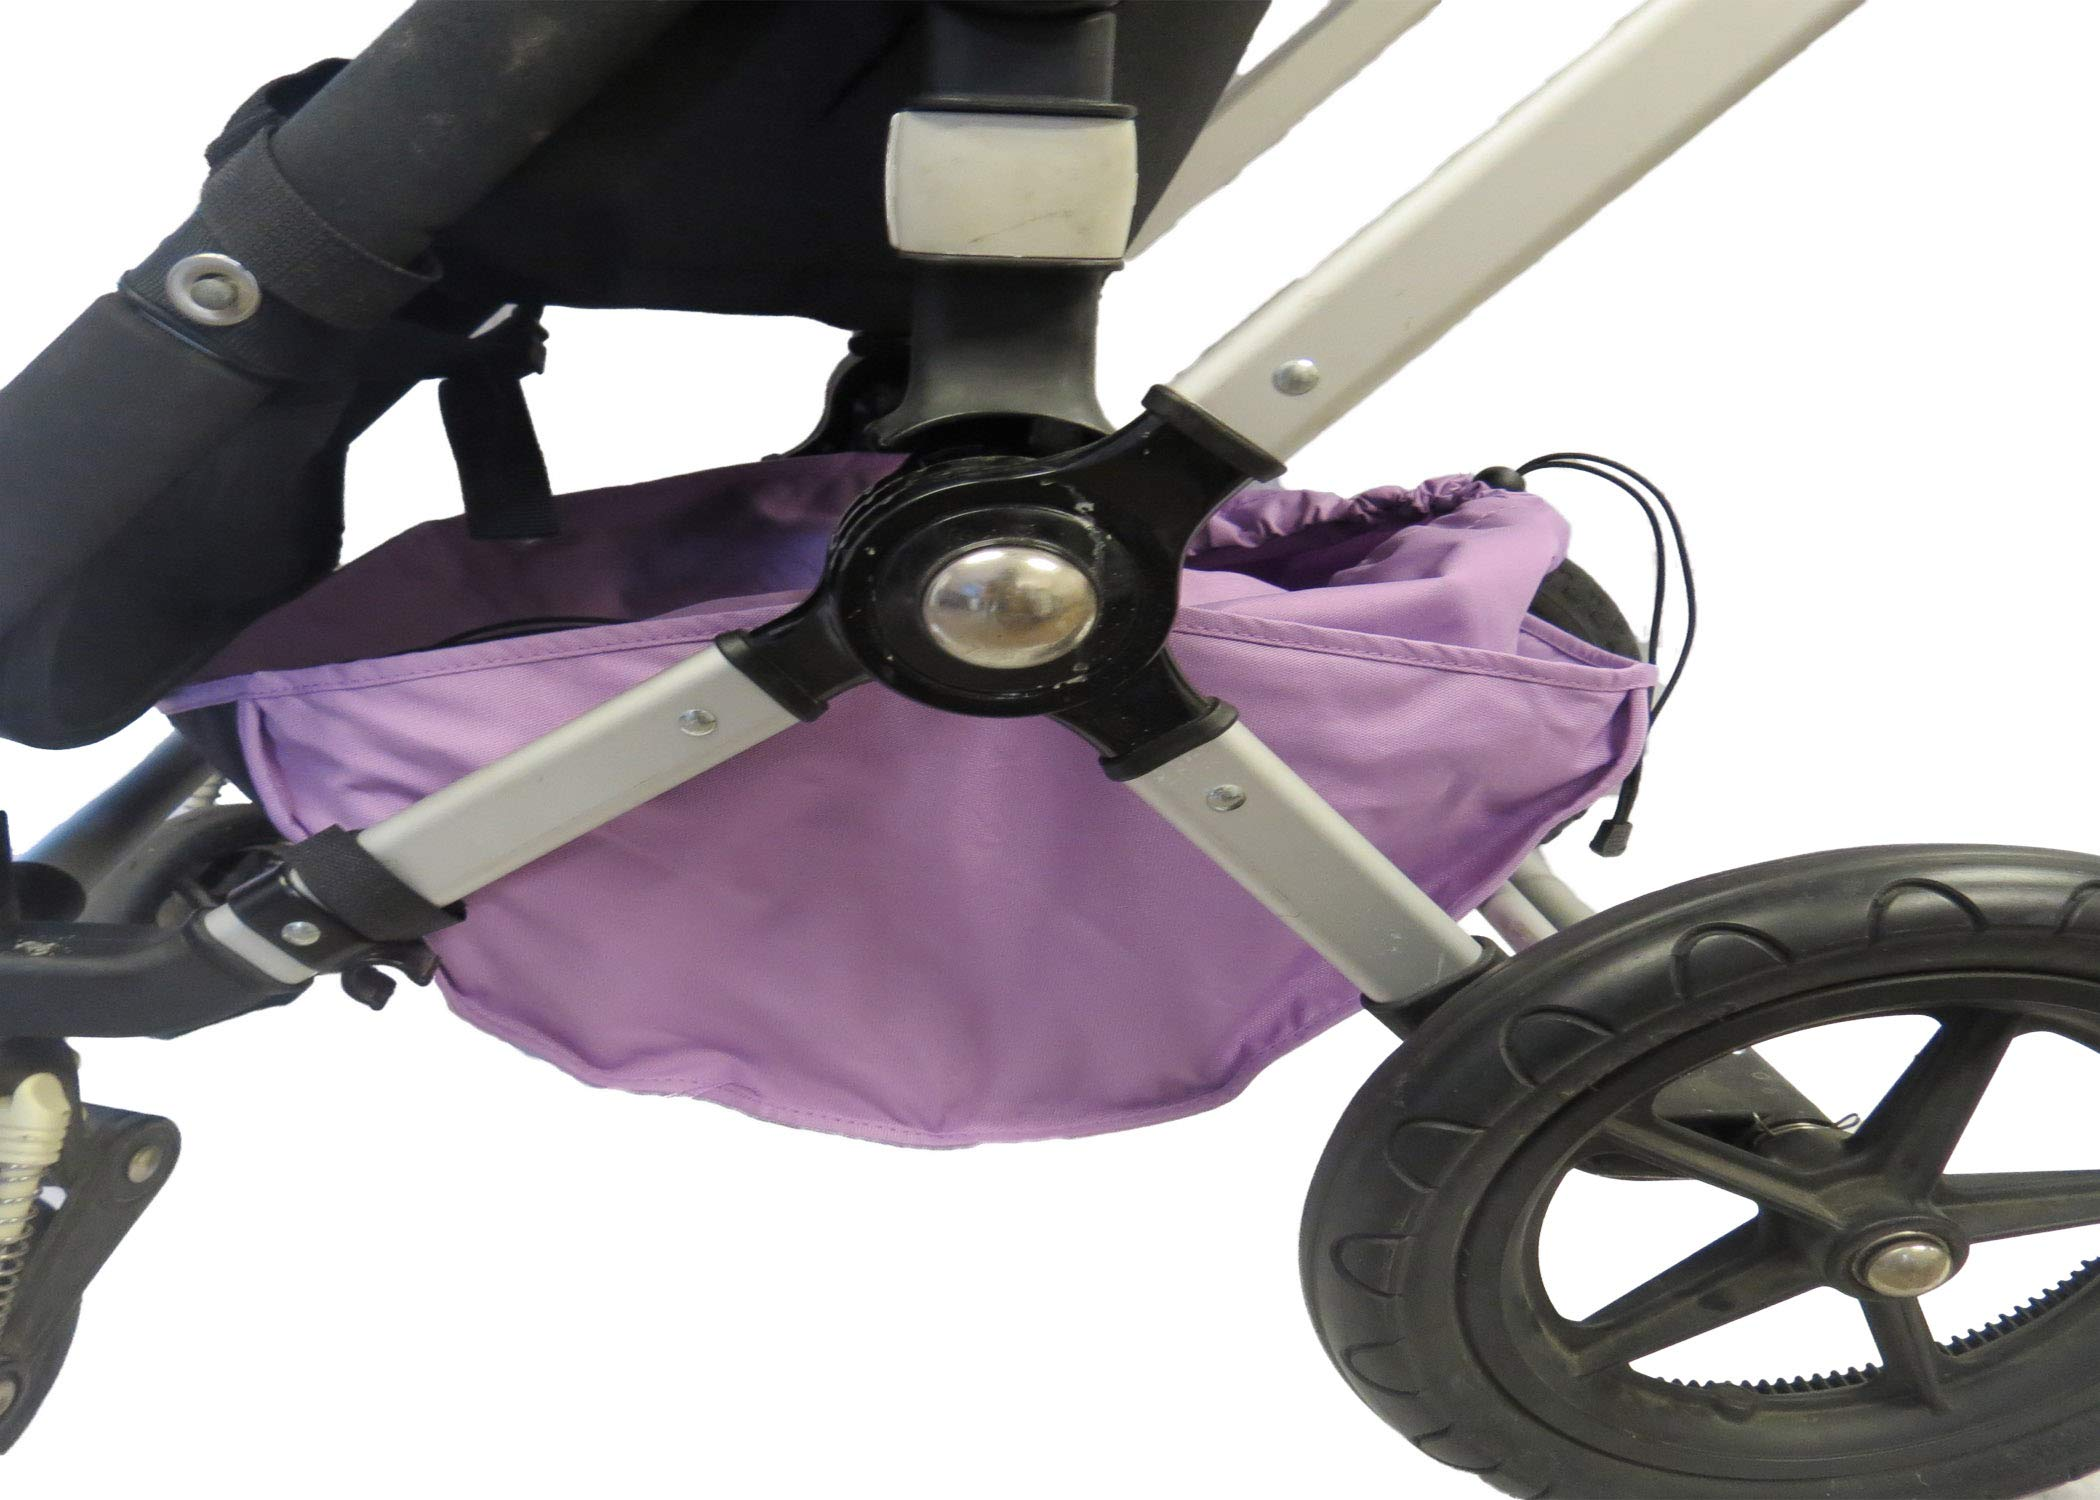 Light Purple Sun Shade Canopy Wires and Large Under Seat Storage Basket Plus Free Handle Bar Covers for Bugaboo Cameleon 1, 2, 3, Frog Baby Child Strollers by Ponini (Image #3)